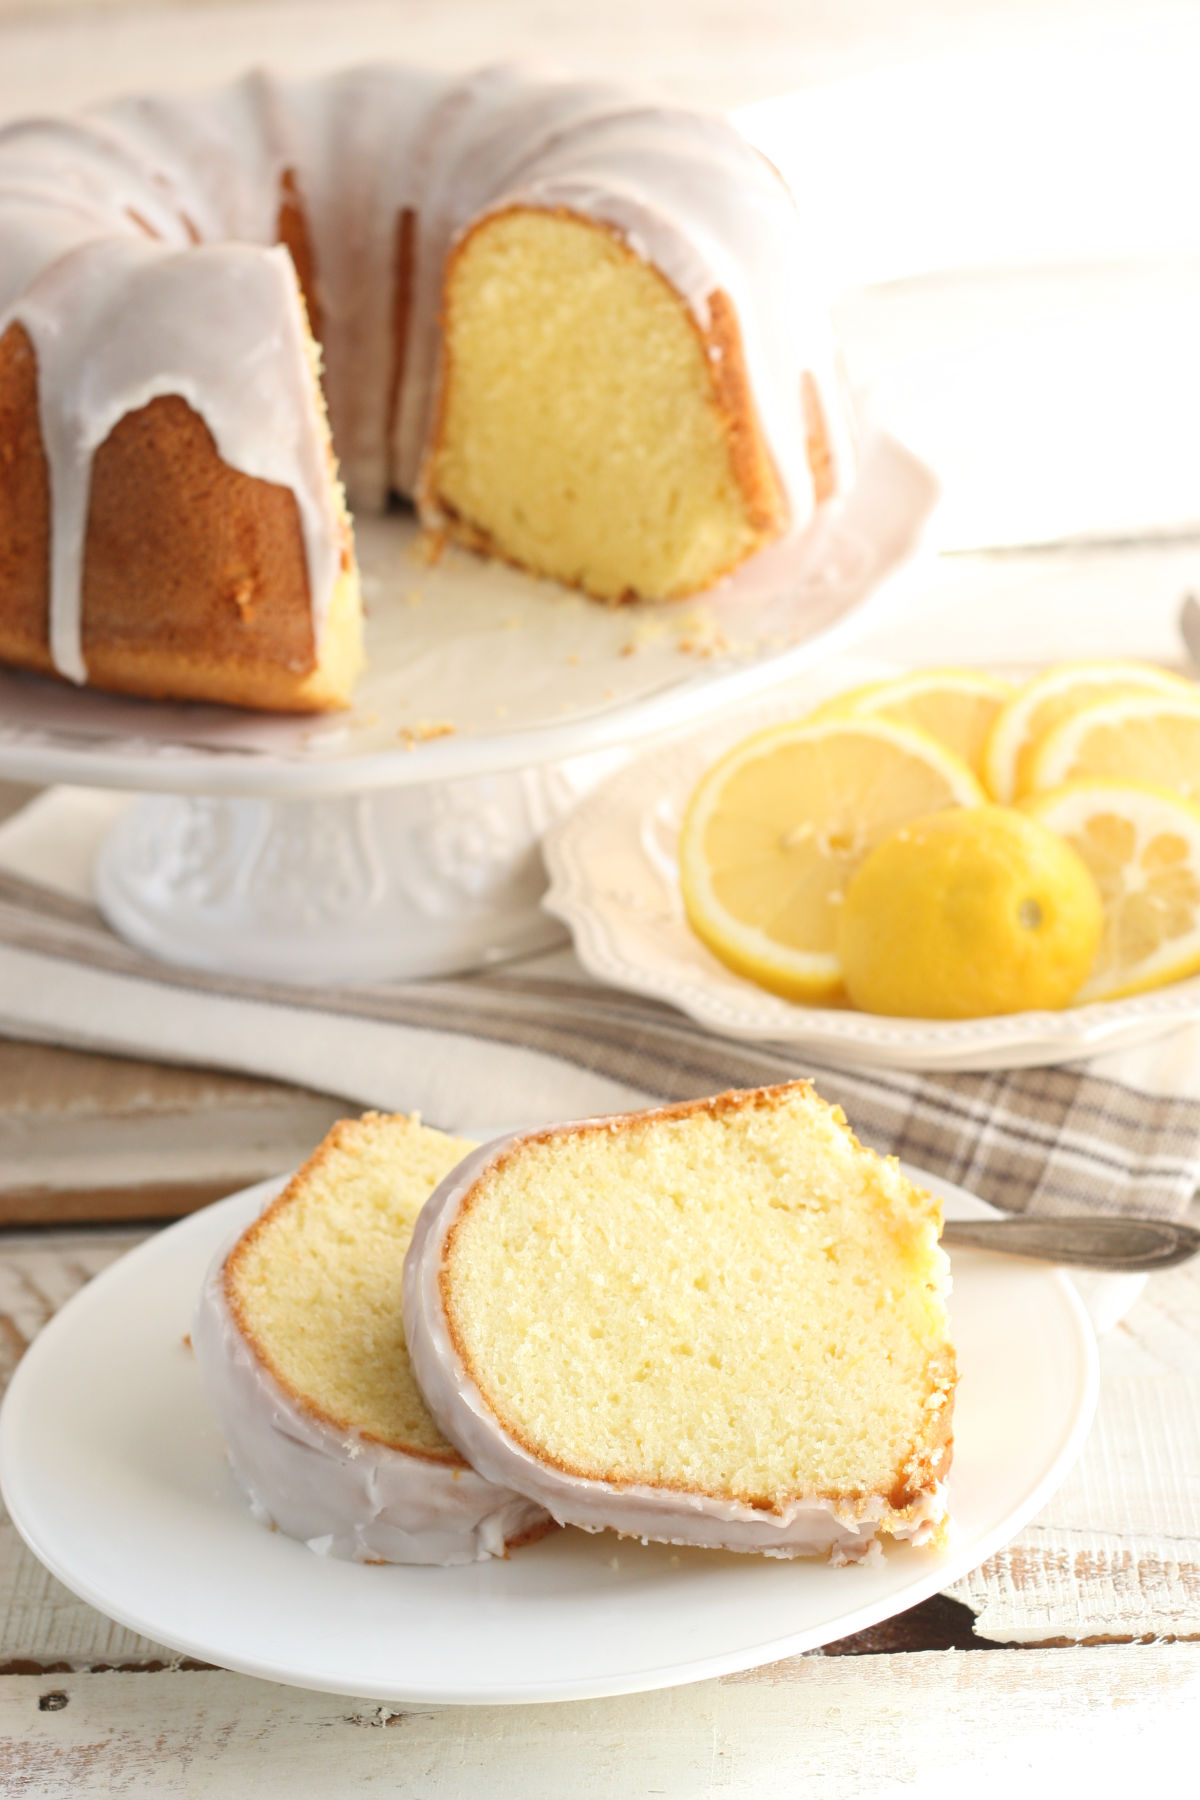 Lemon Bundt cake on white footed cake dish, two slices on small white plate.